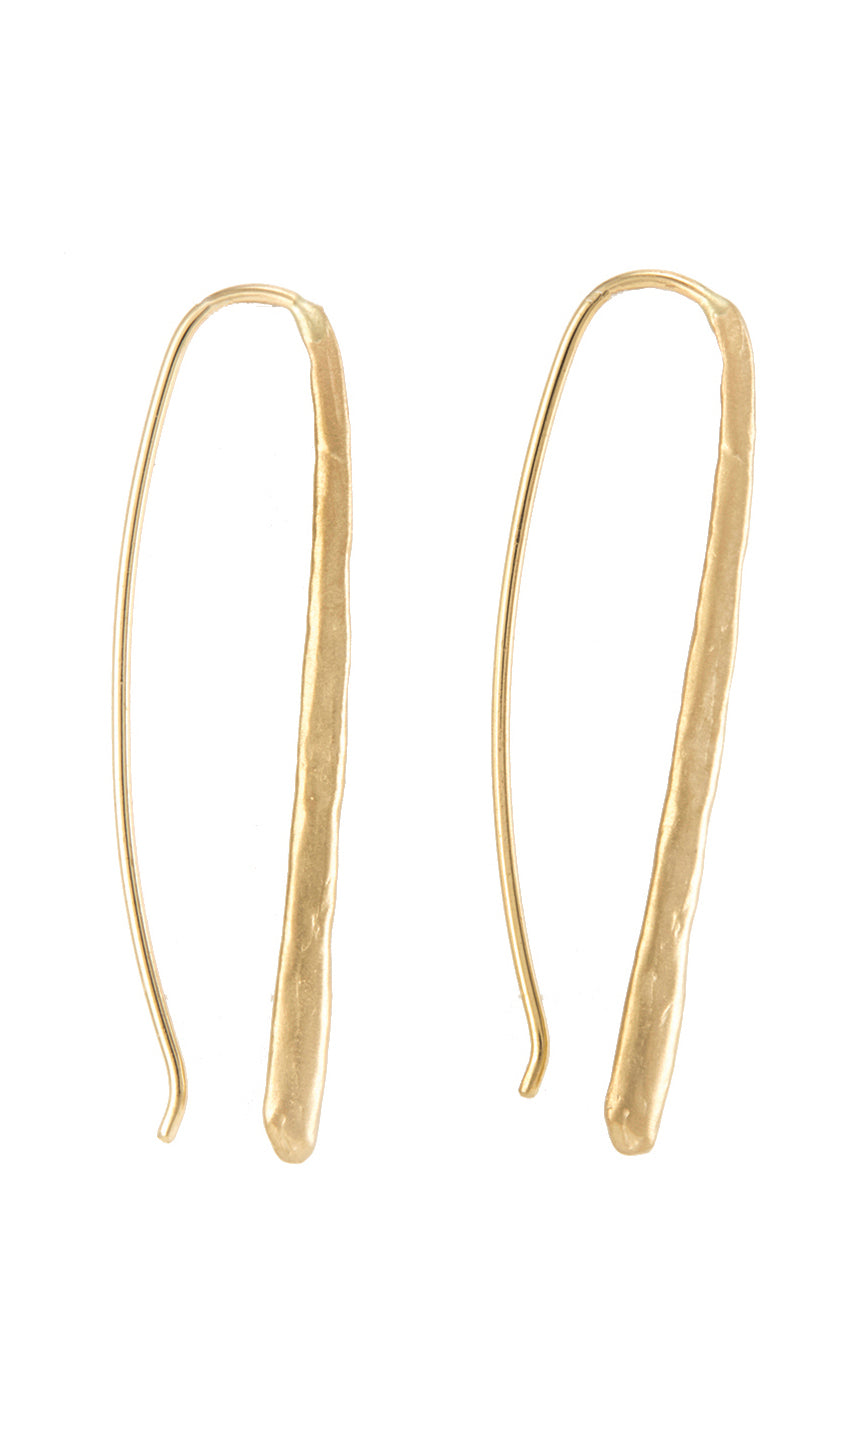 Zemi Earrings